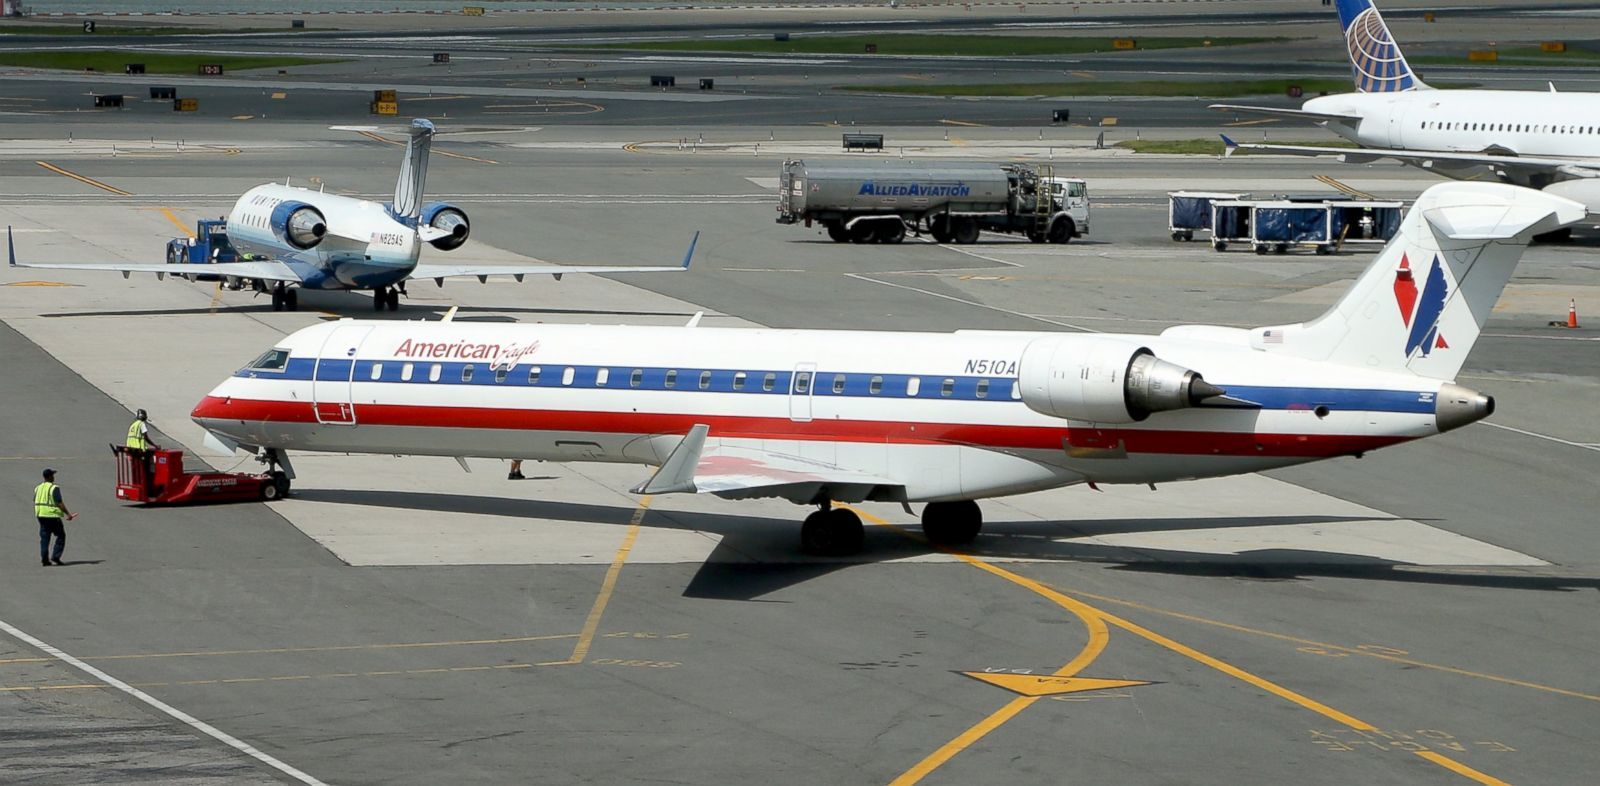 PHOTO: An American Airlines jet taxis on the runway at Laguardia Airport, Aug. 14, 2013, in New York.